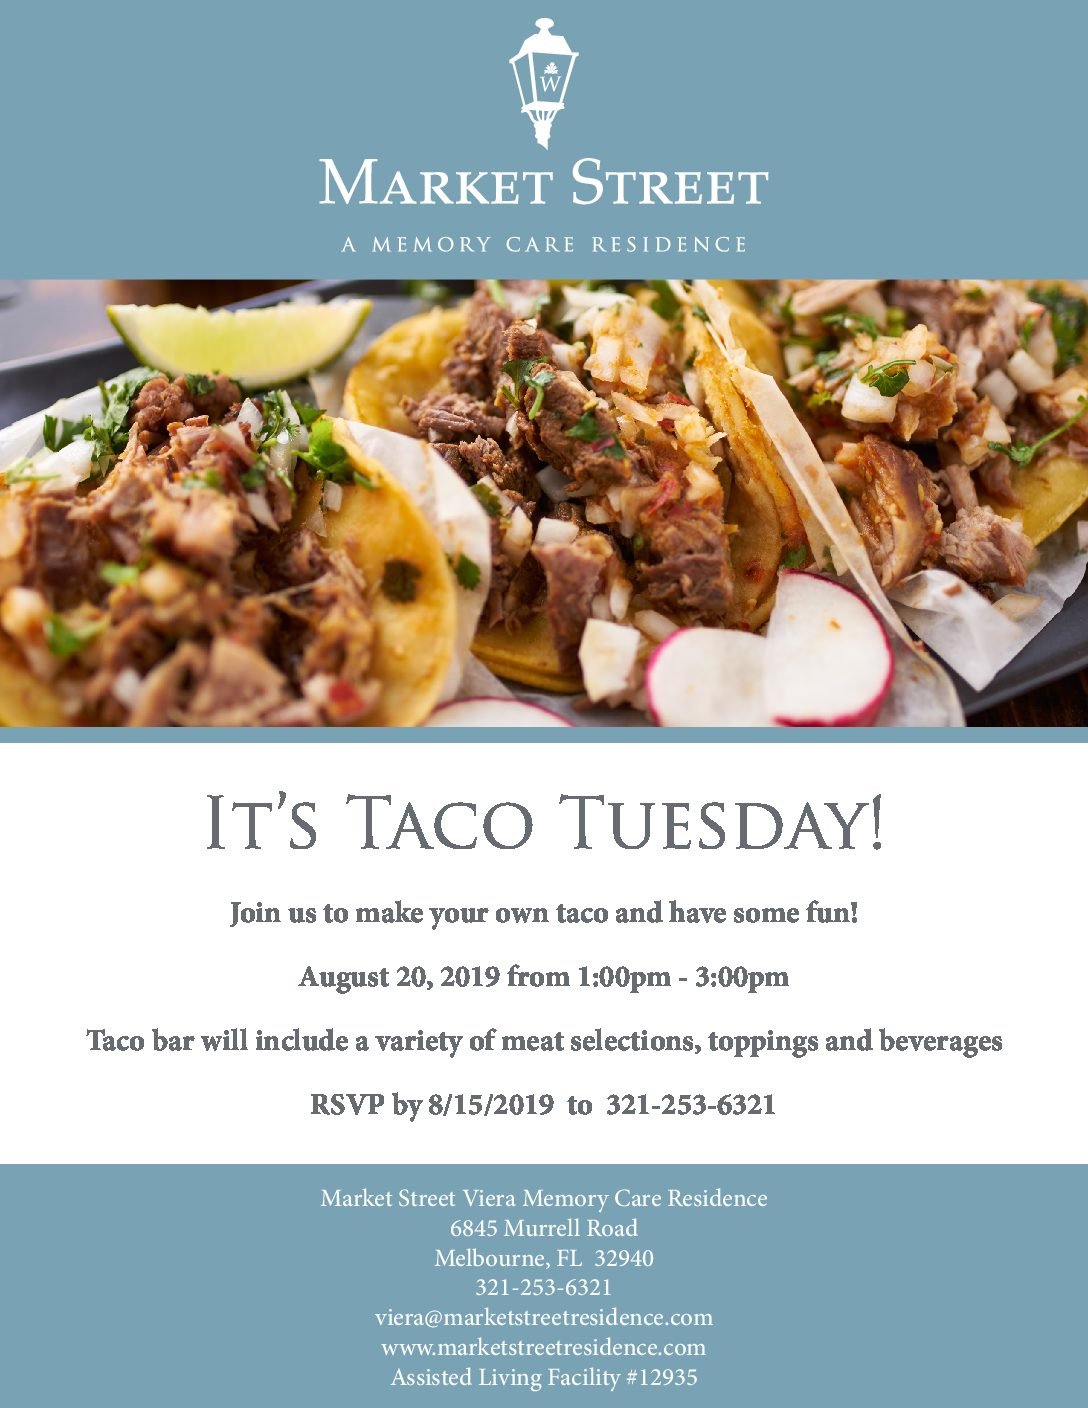 It's Taco Tuesday! at Market Street